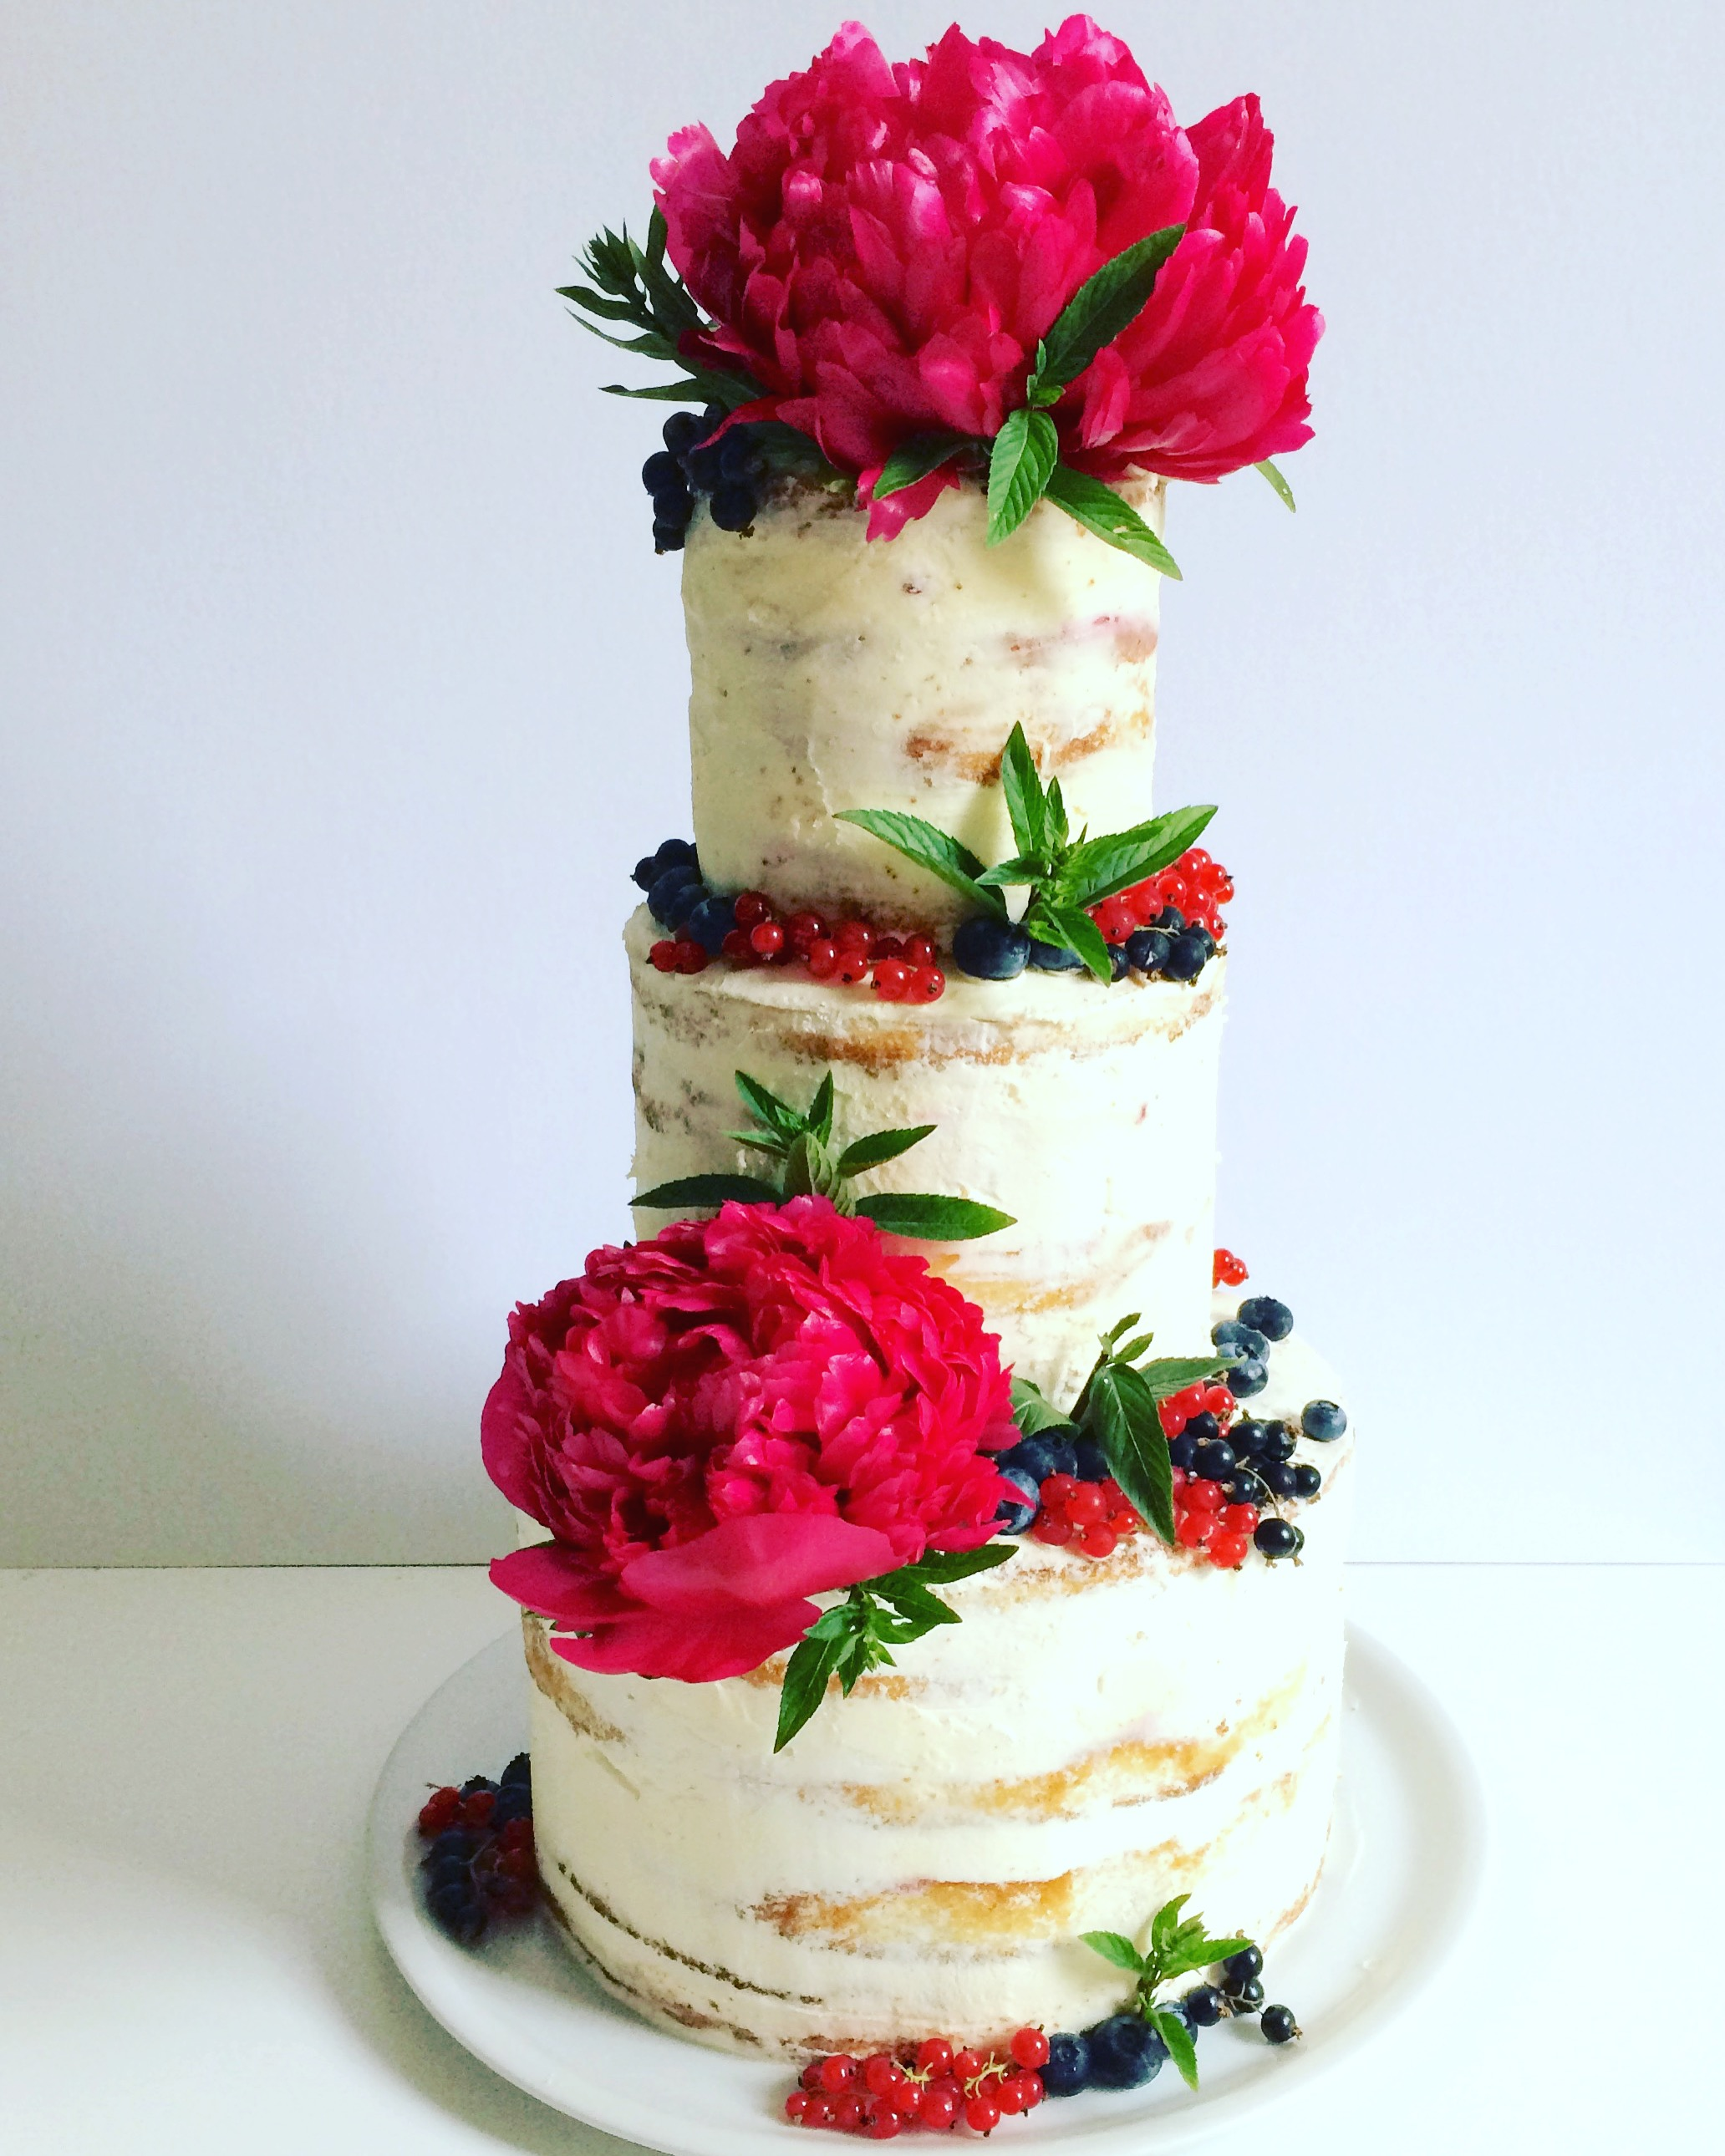 Naked wedding cake with large red sugar flowers